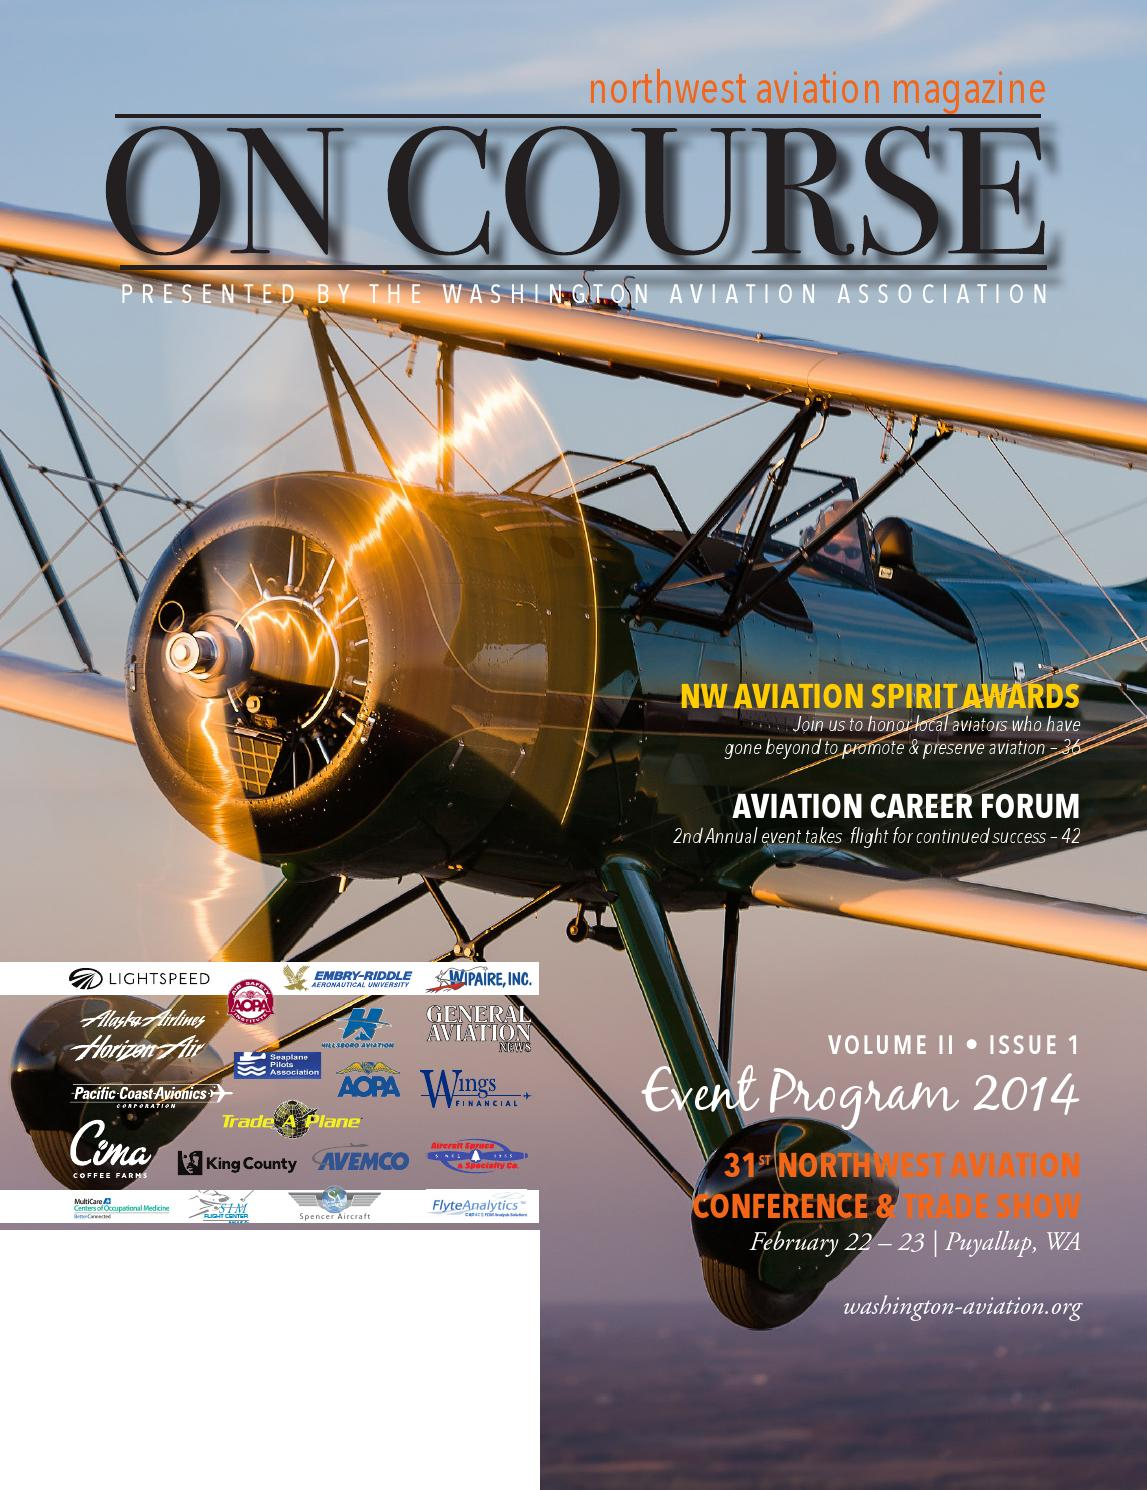 2014 Northwest Aviation Conference & Trade Show by Rachel